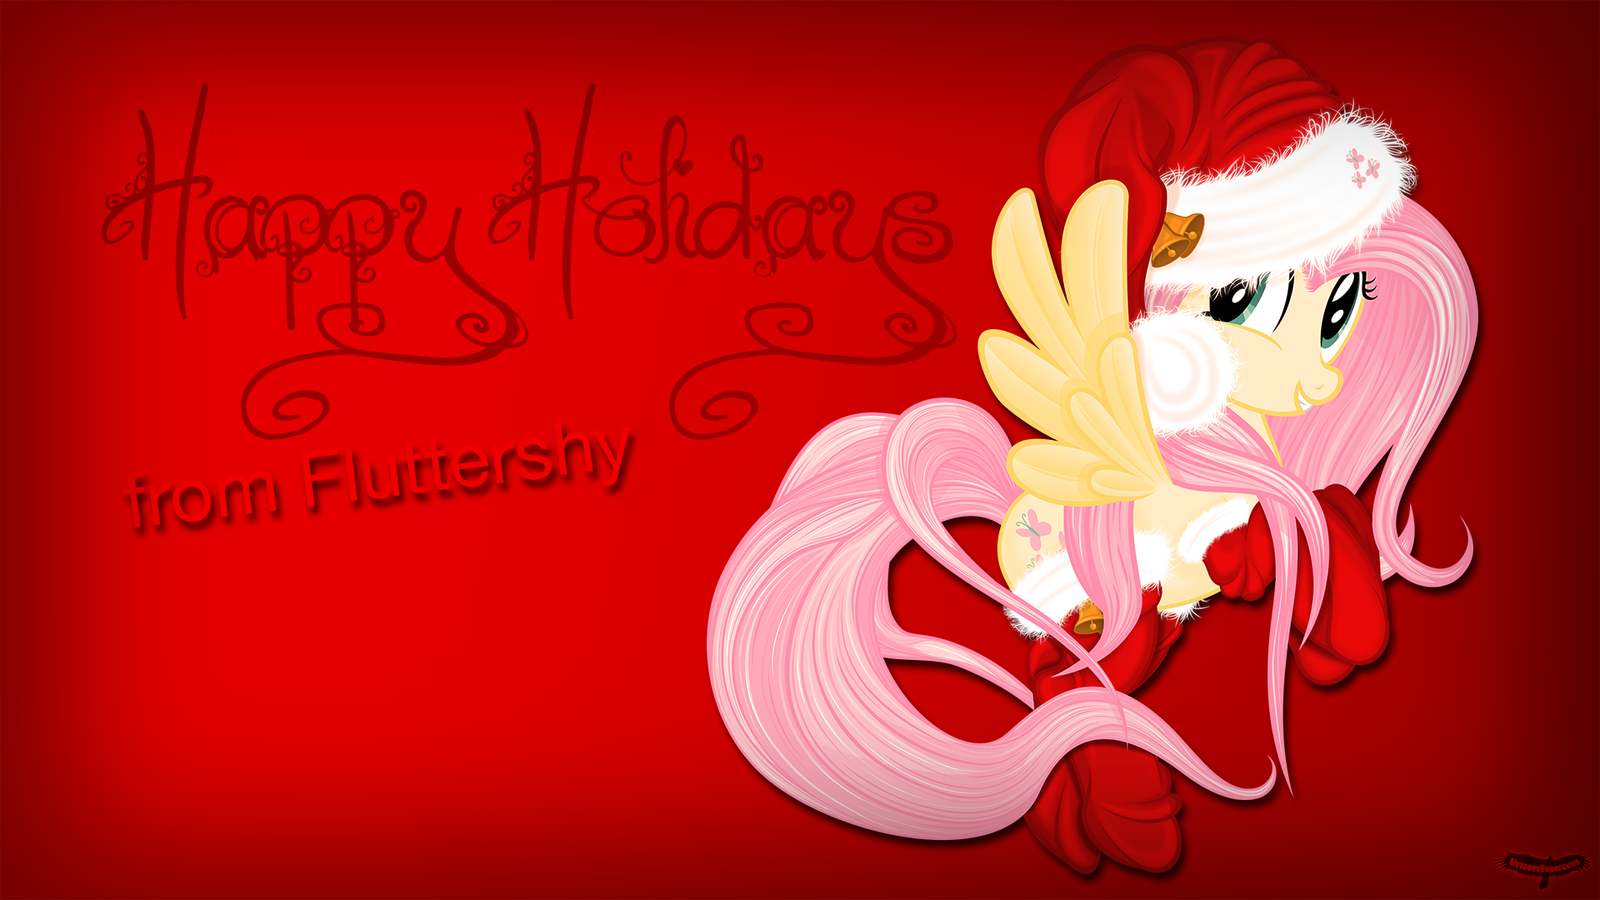 Happy Holidays from Fluttershy by UtterlyLudicrous